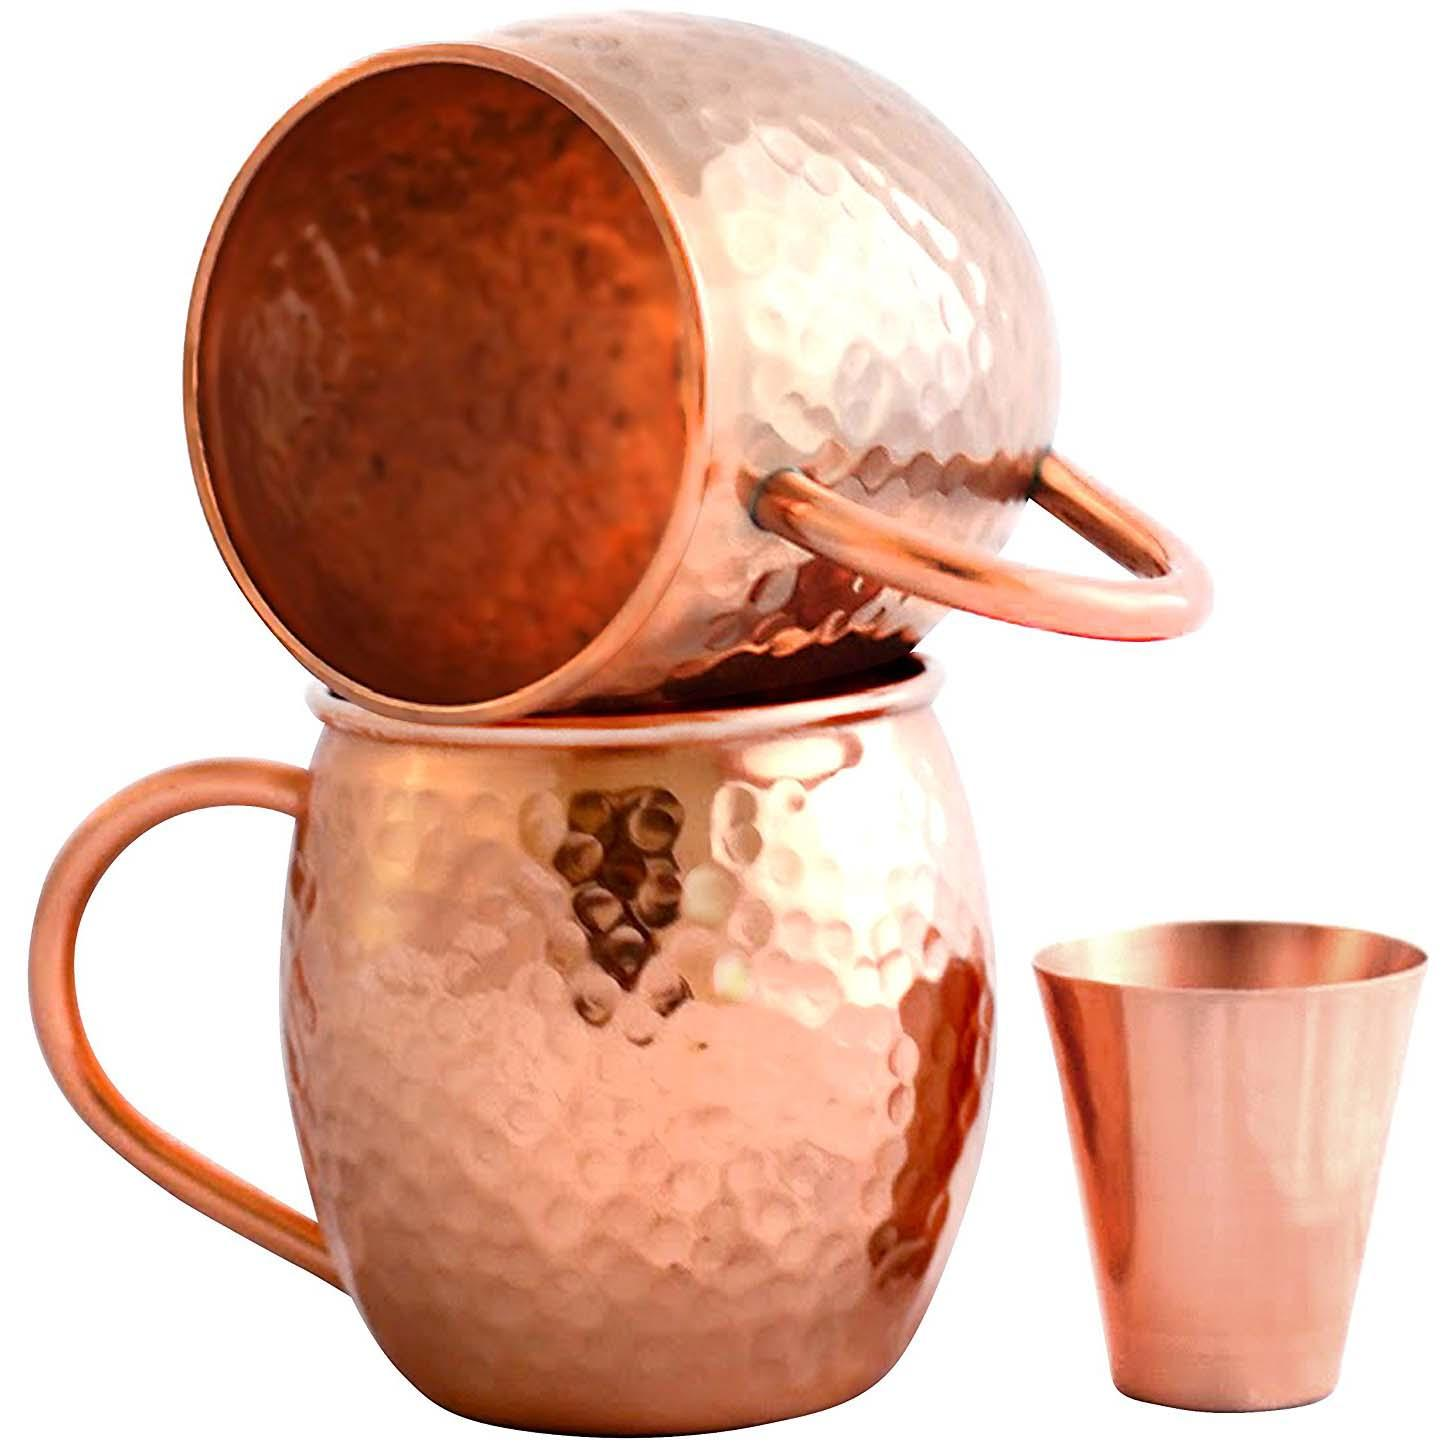 2 Moscow Mule Copper Mugs with Shot Glass